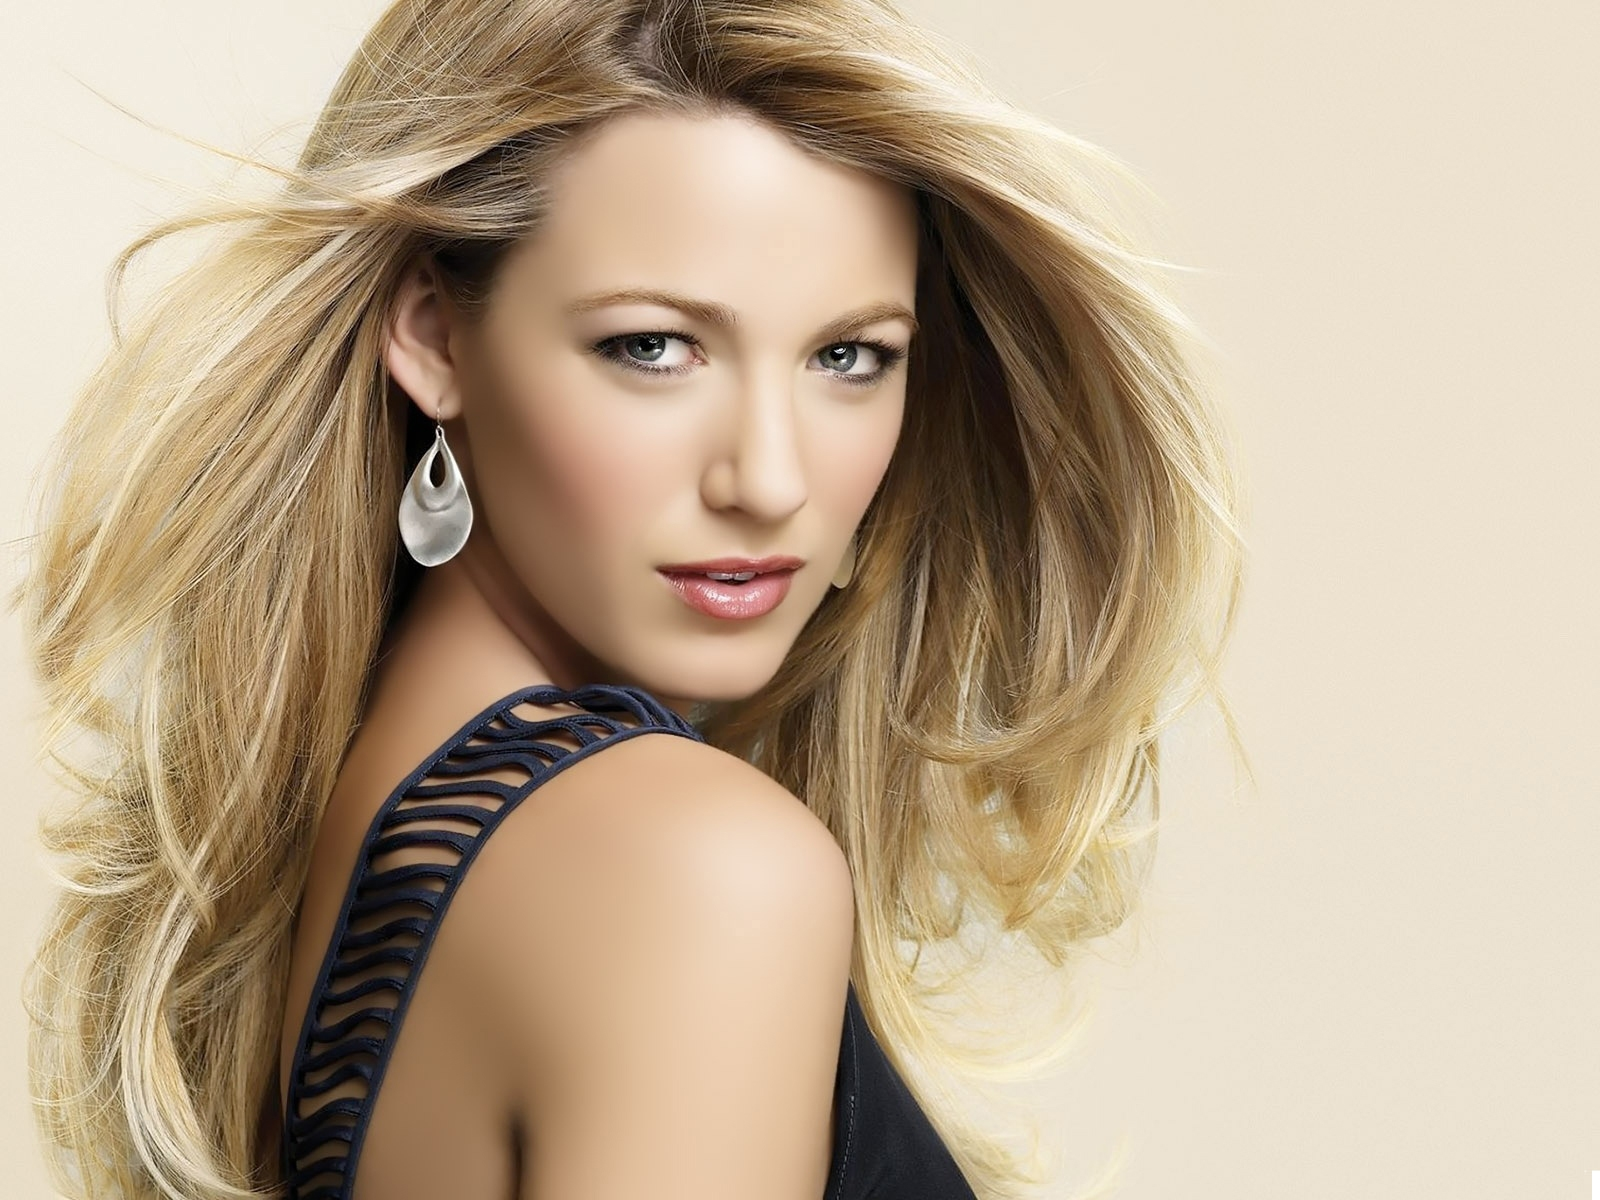 Blake Lively HD New wallpapers 2012   All Hollywood Stars